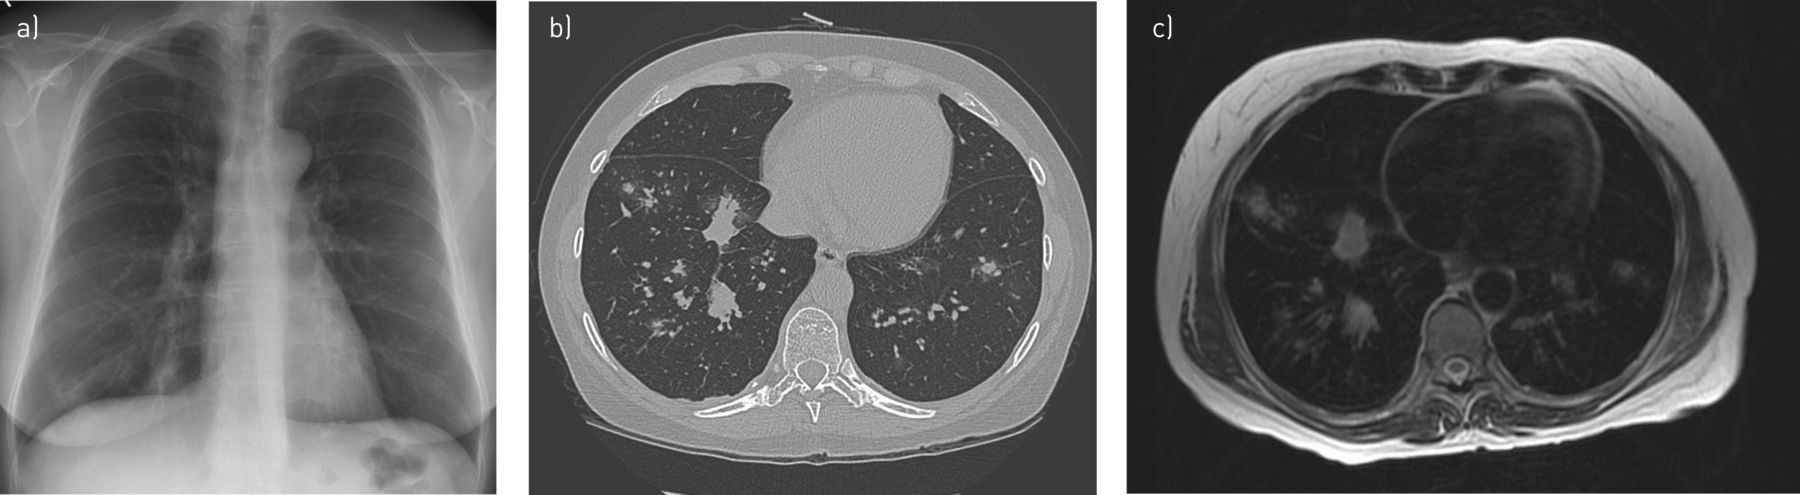 Chest magnetic resonance imaging for pneumonia diagnosis in